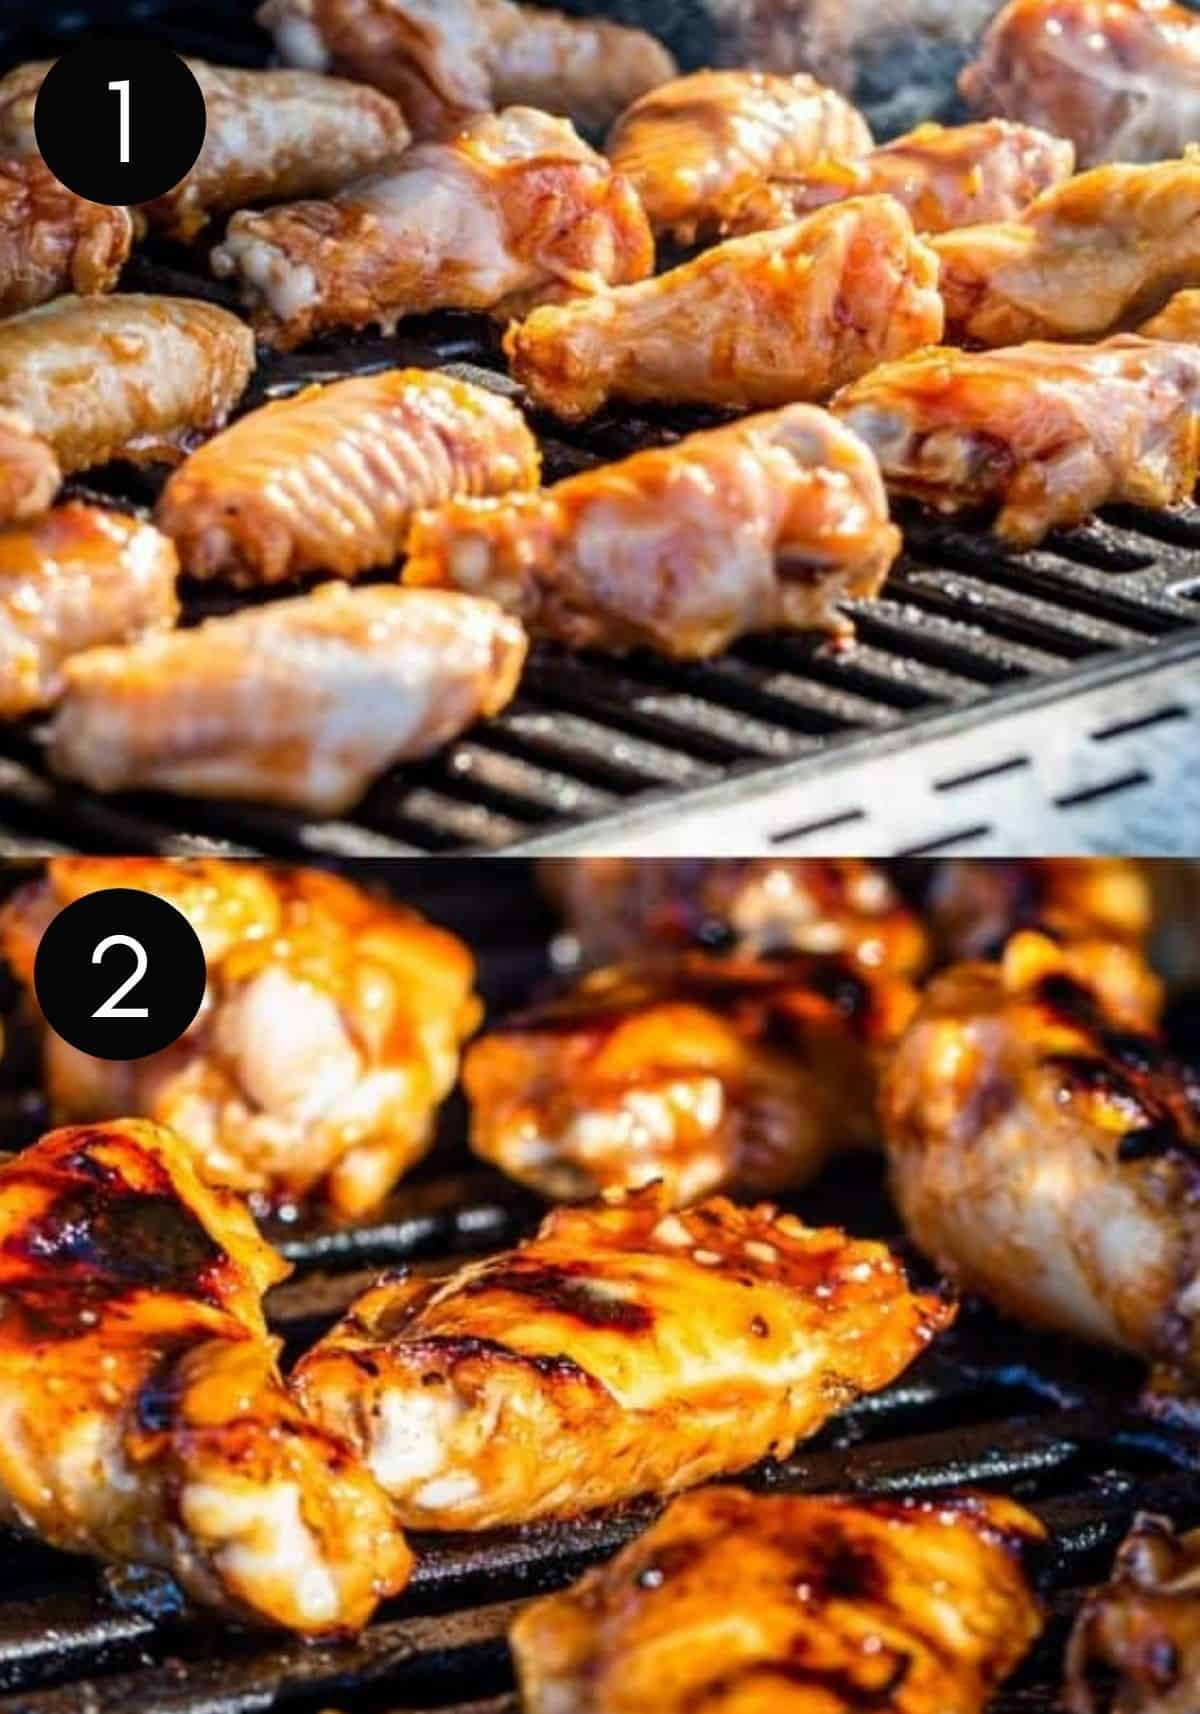 Two image collage showing chicken wings being grilled with numbered pictures.